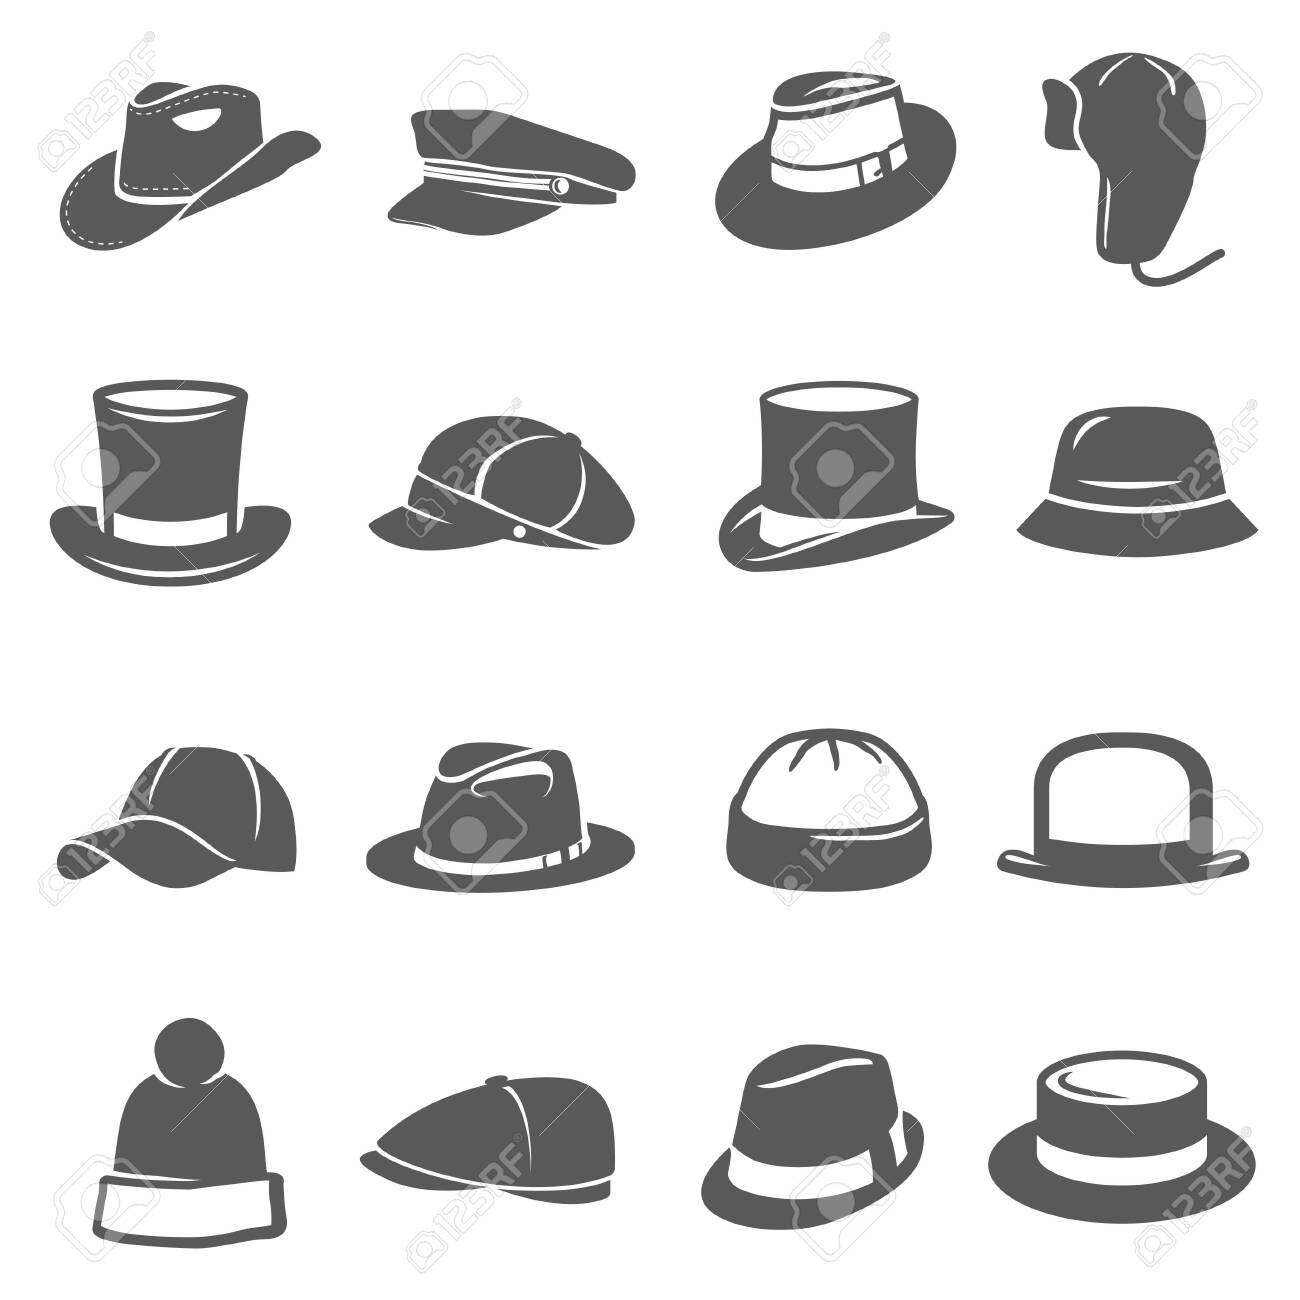 Hat icon set, traditional head wear accessory - 148951328